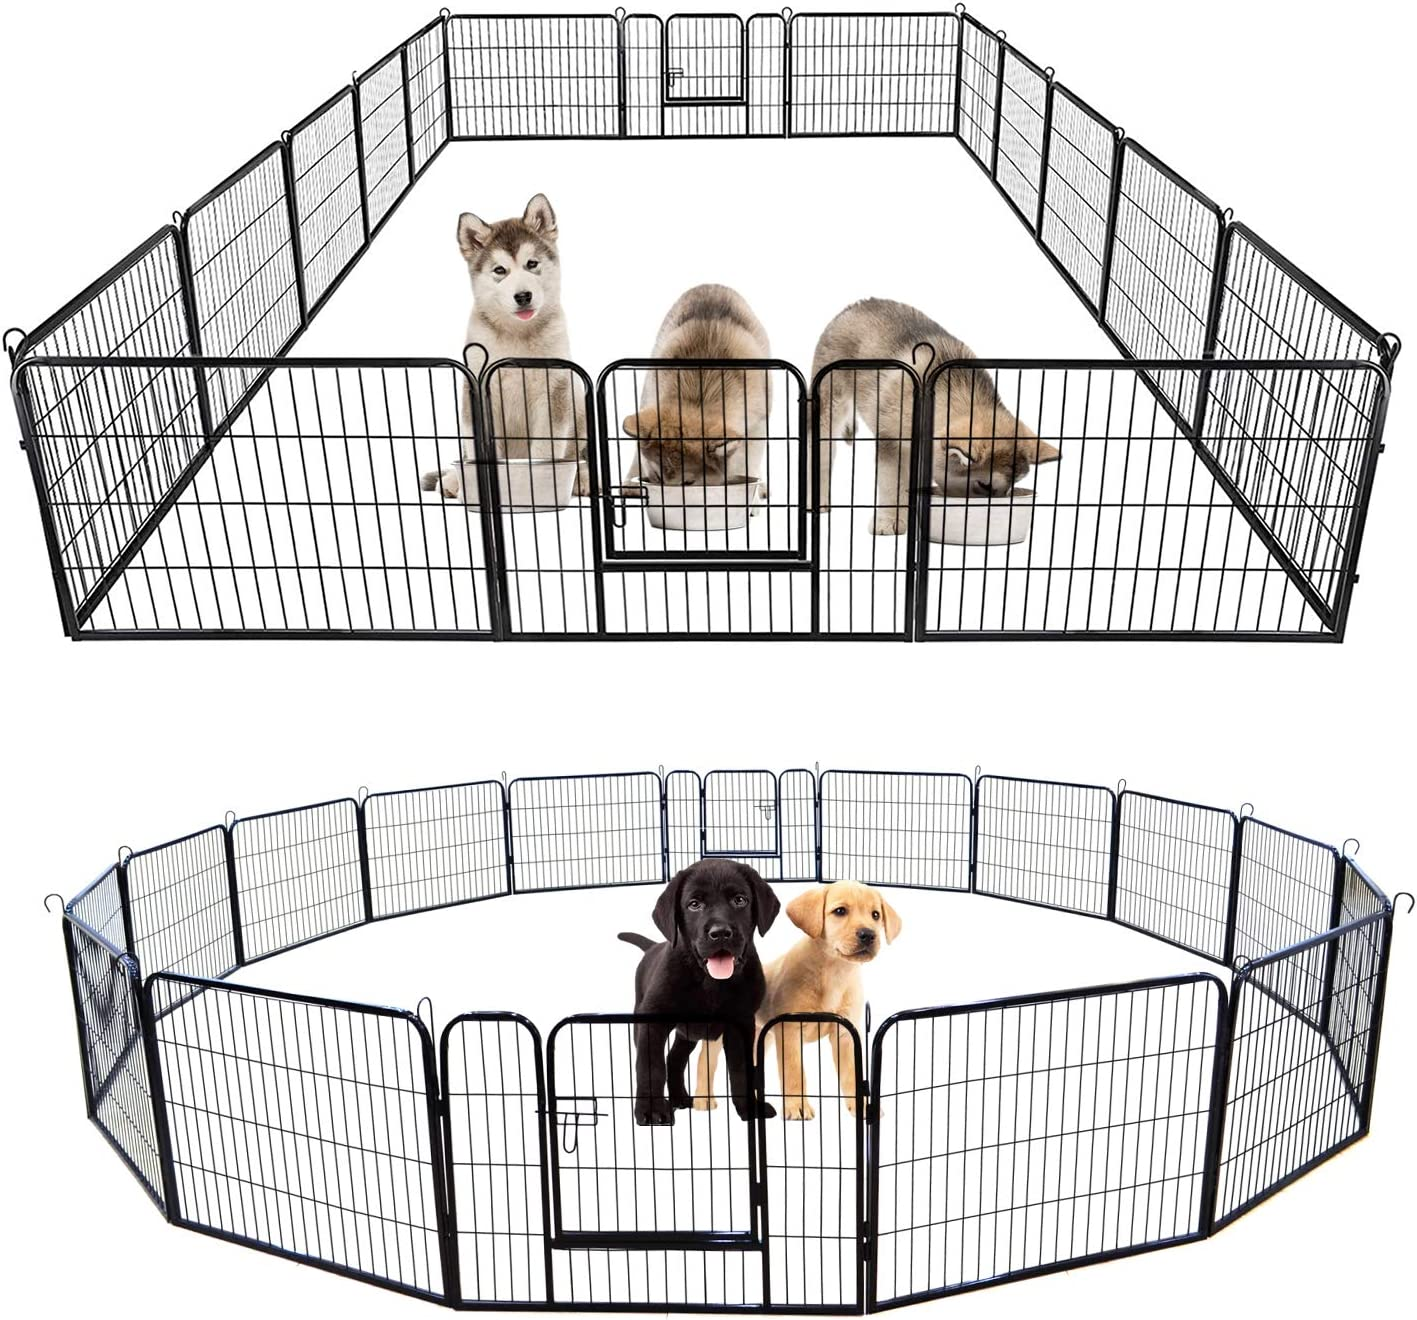 jeerbly Dog Playpen Indoor Outdoor Extra Exercis Panel Max 55% OFF Ranking TOP7 Large 16